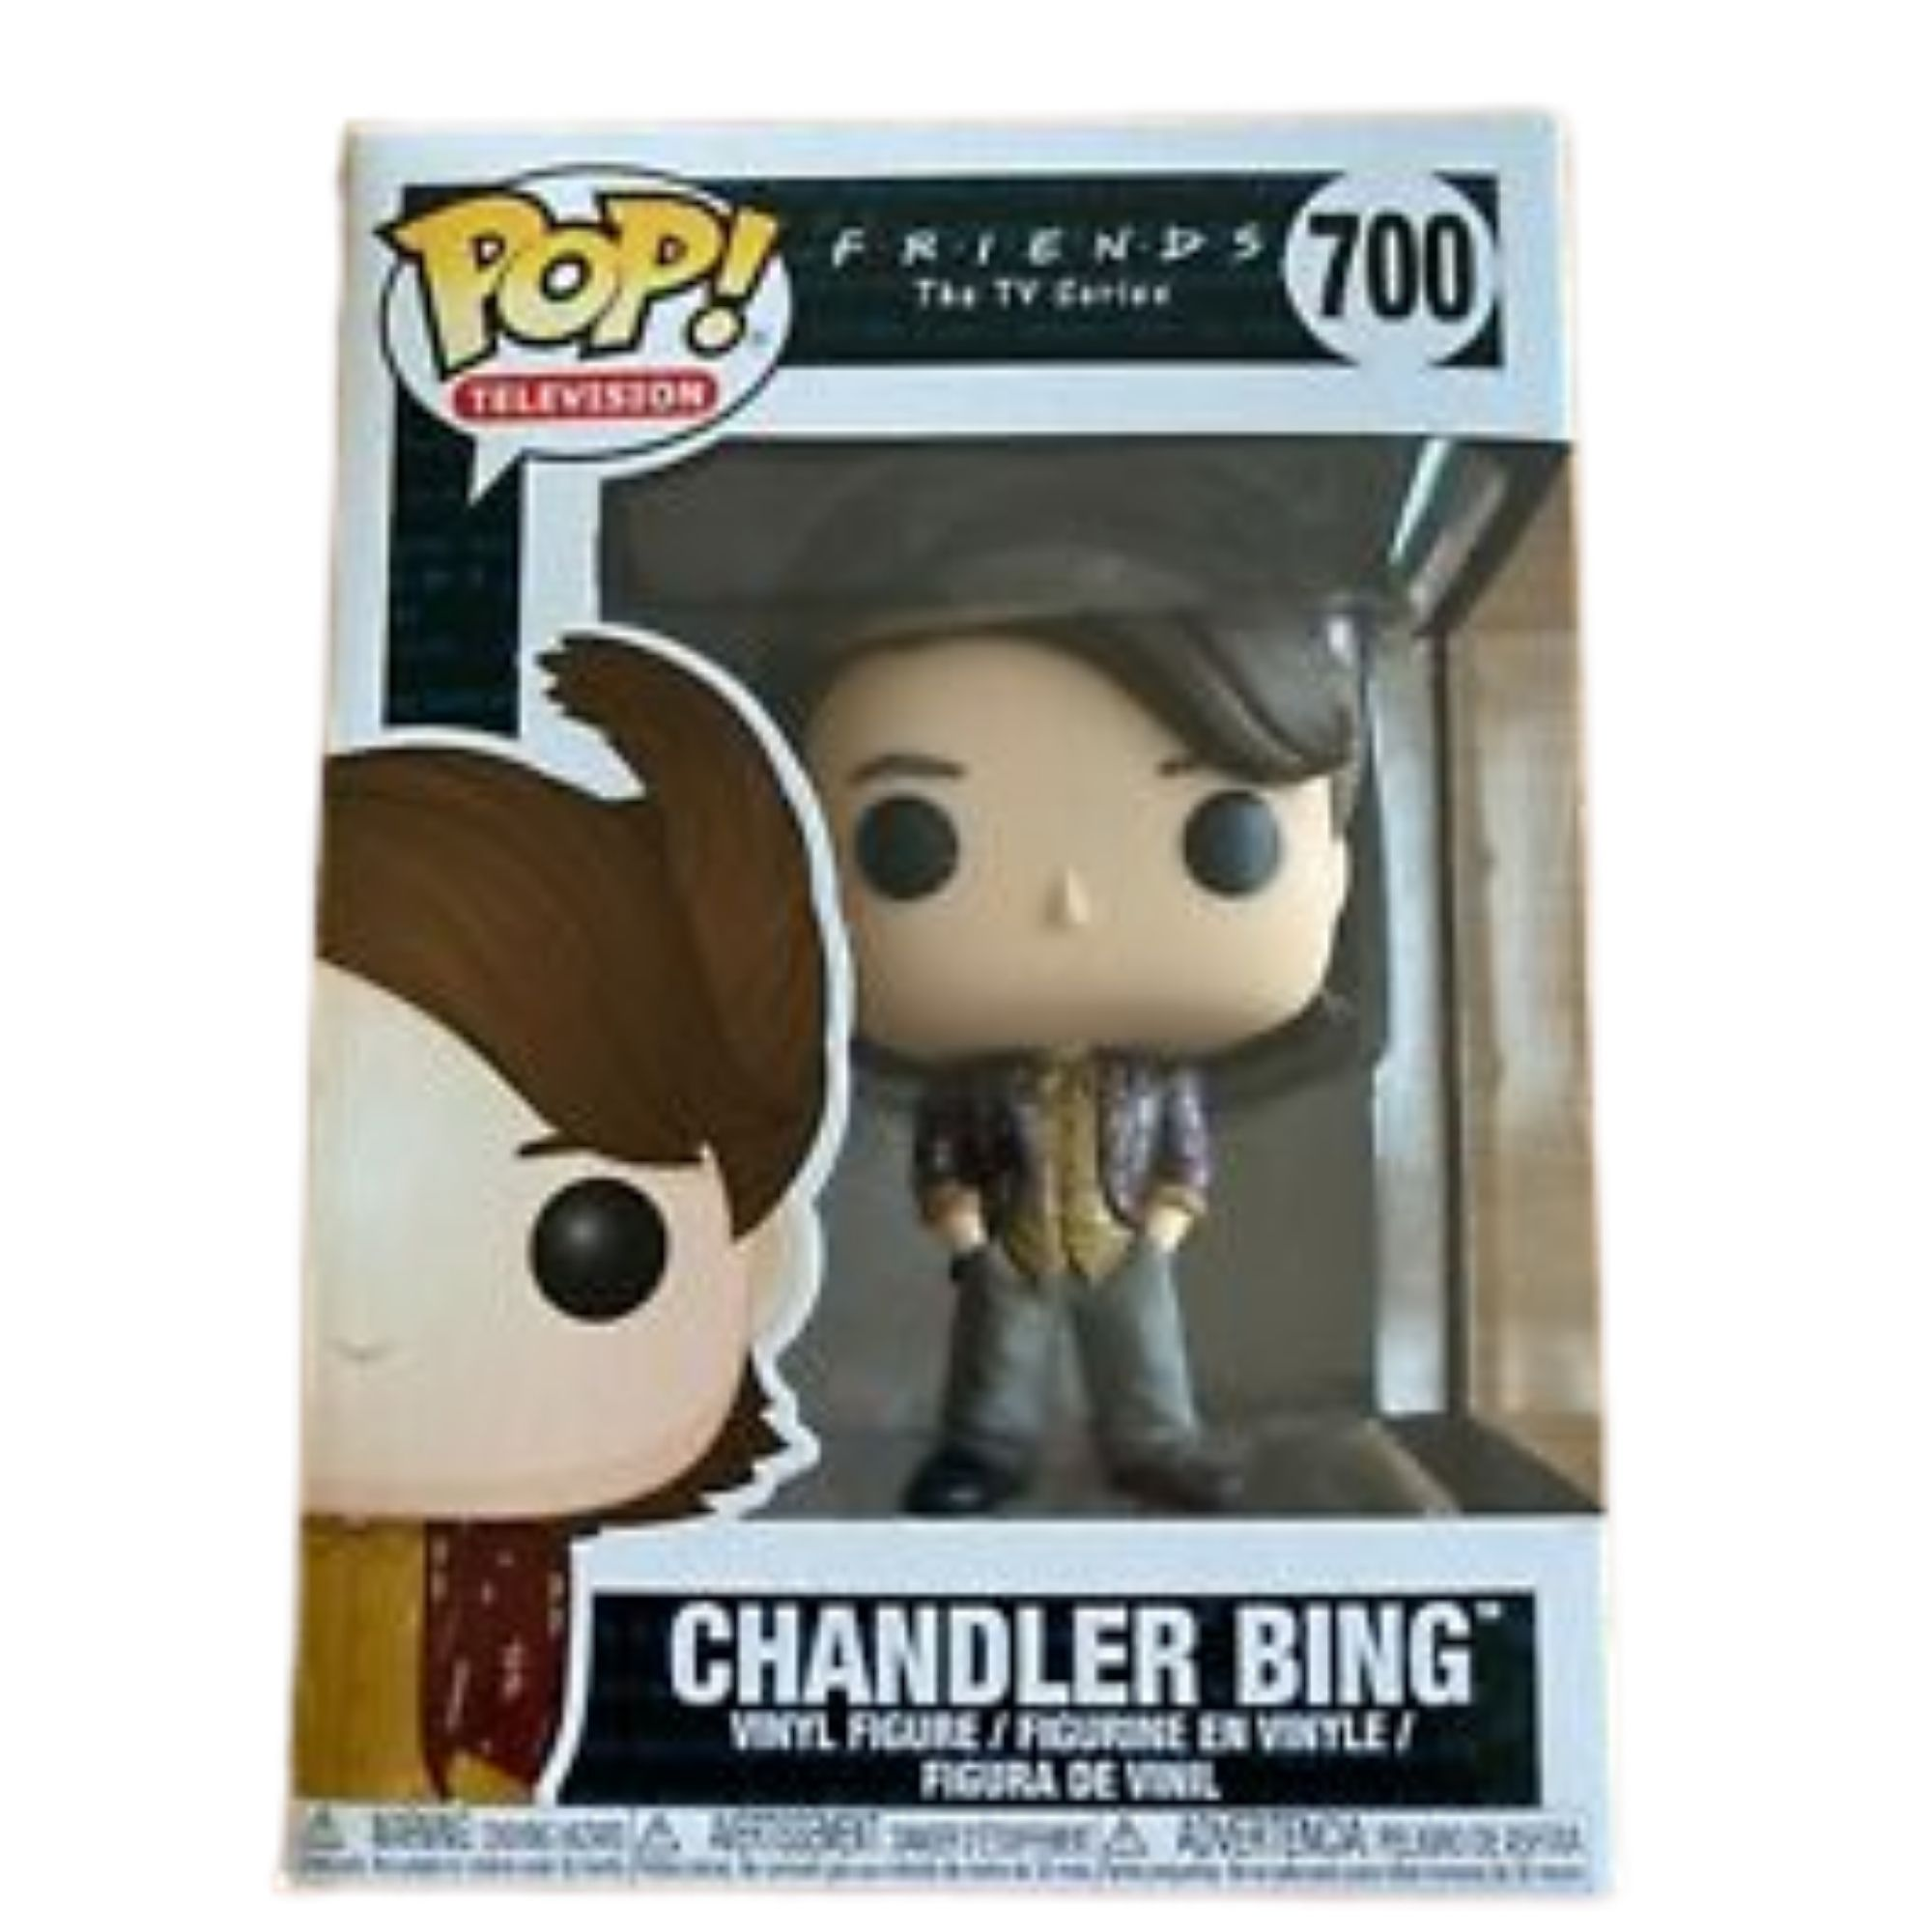 Funko Pop Friends Chandler Bing #700  - Game Land Brinquedos